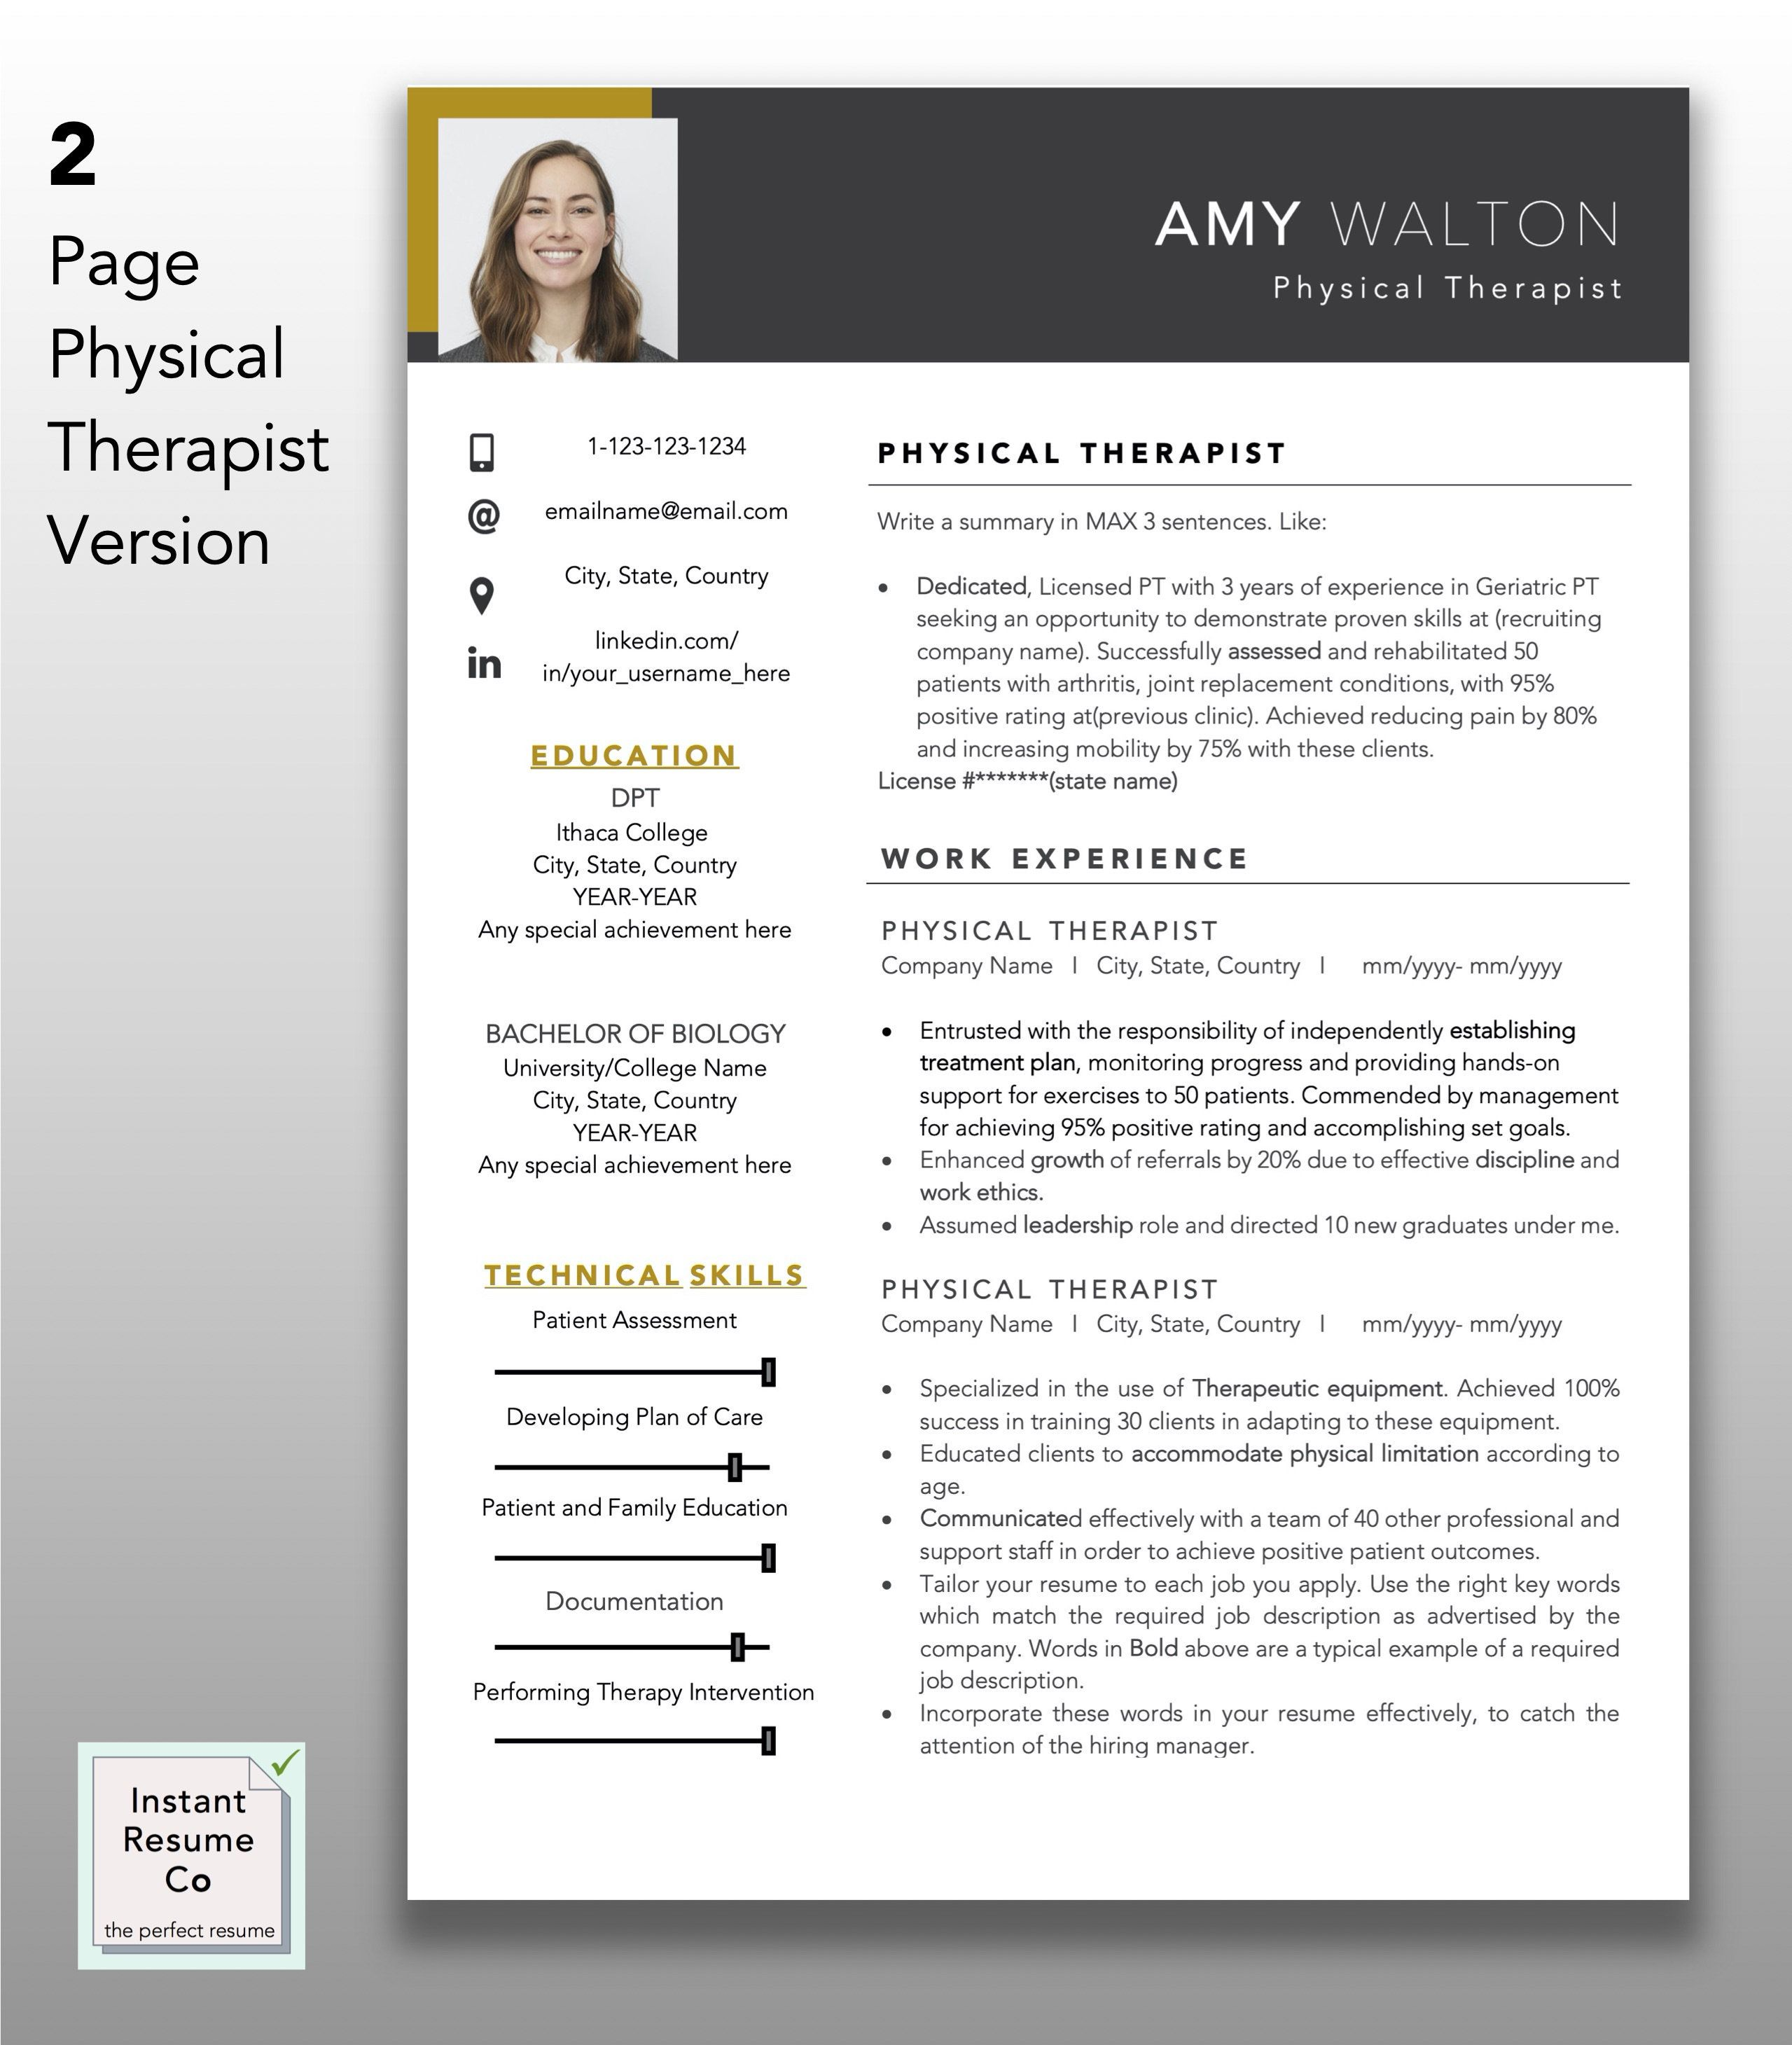 47+ Physical therapist resume template ideas in 2021